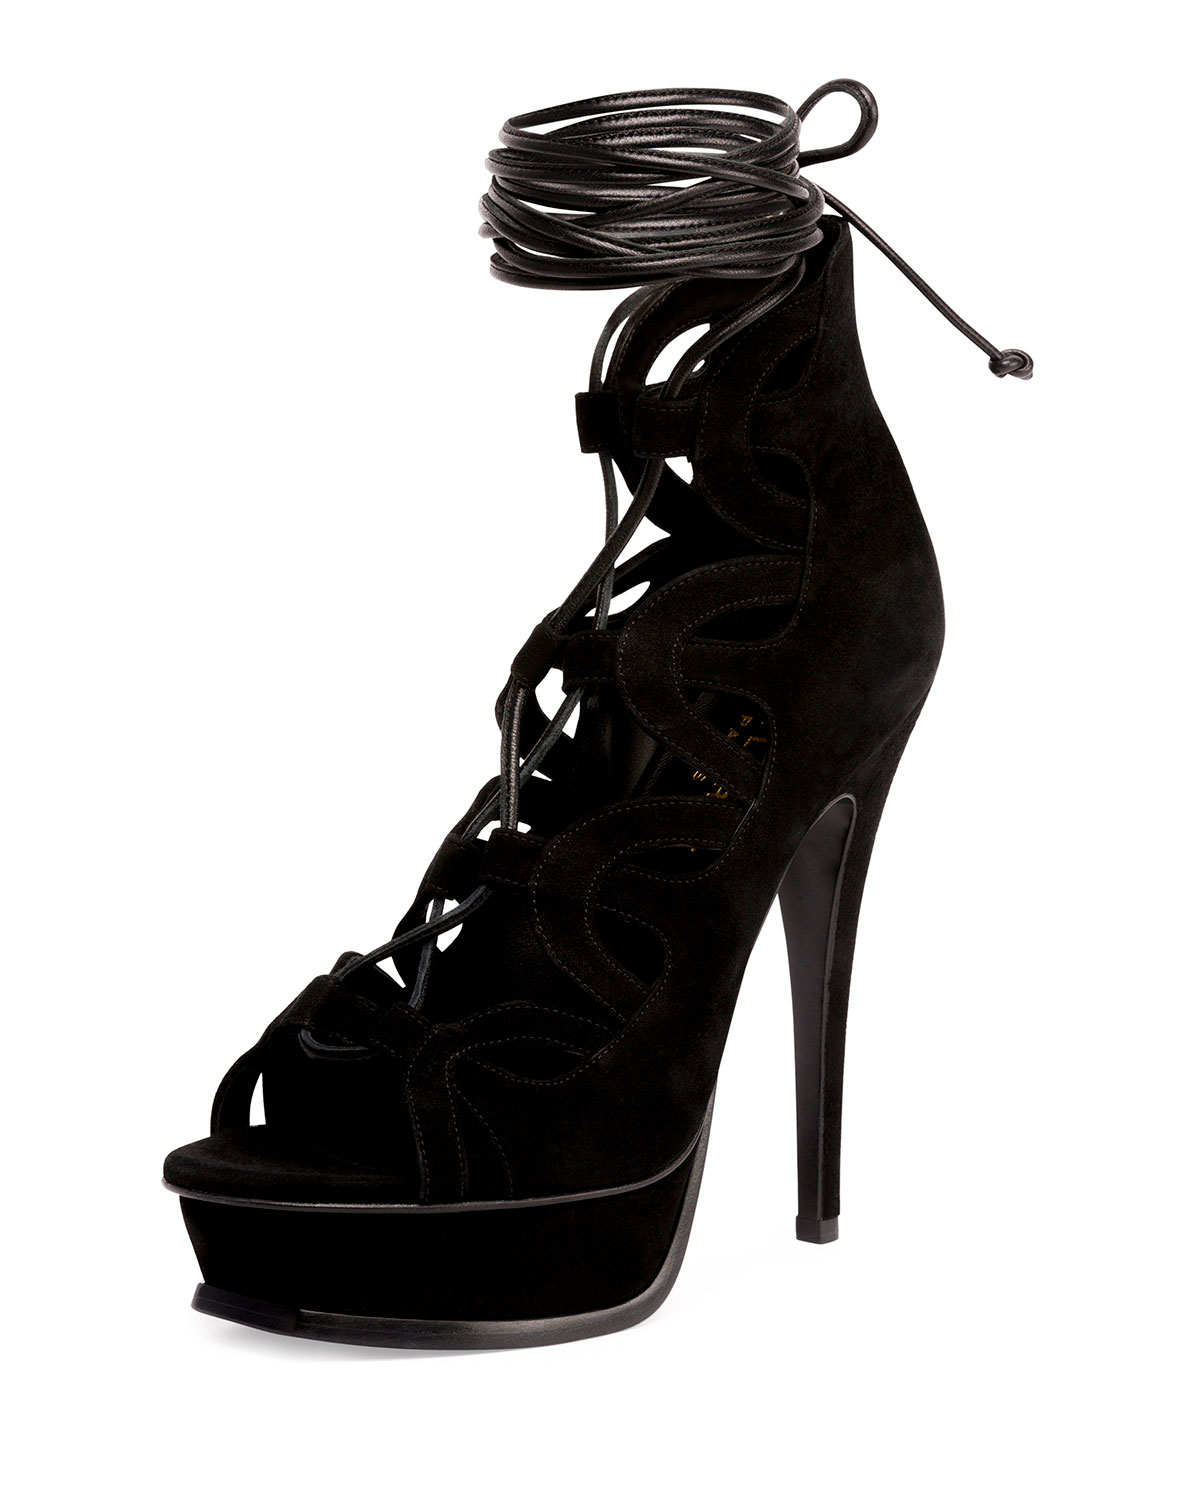 cb2f85b5e19 Saint Laurent Tribute Suede Platform Lace-Up Cage Sandal | Neiman Marcus